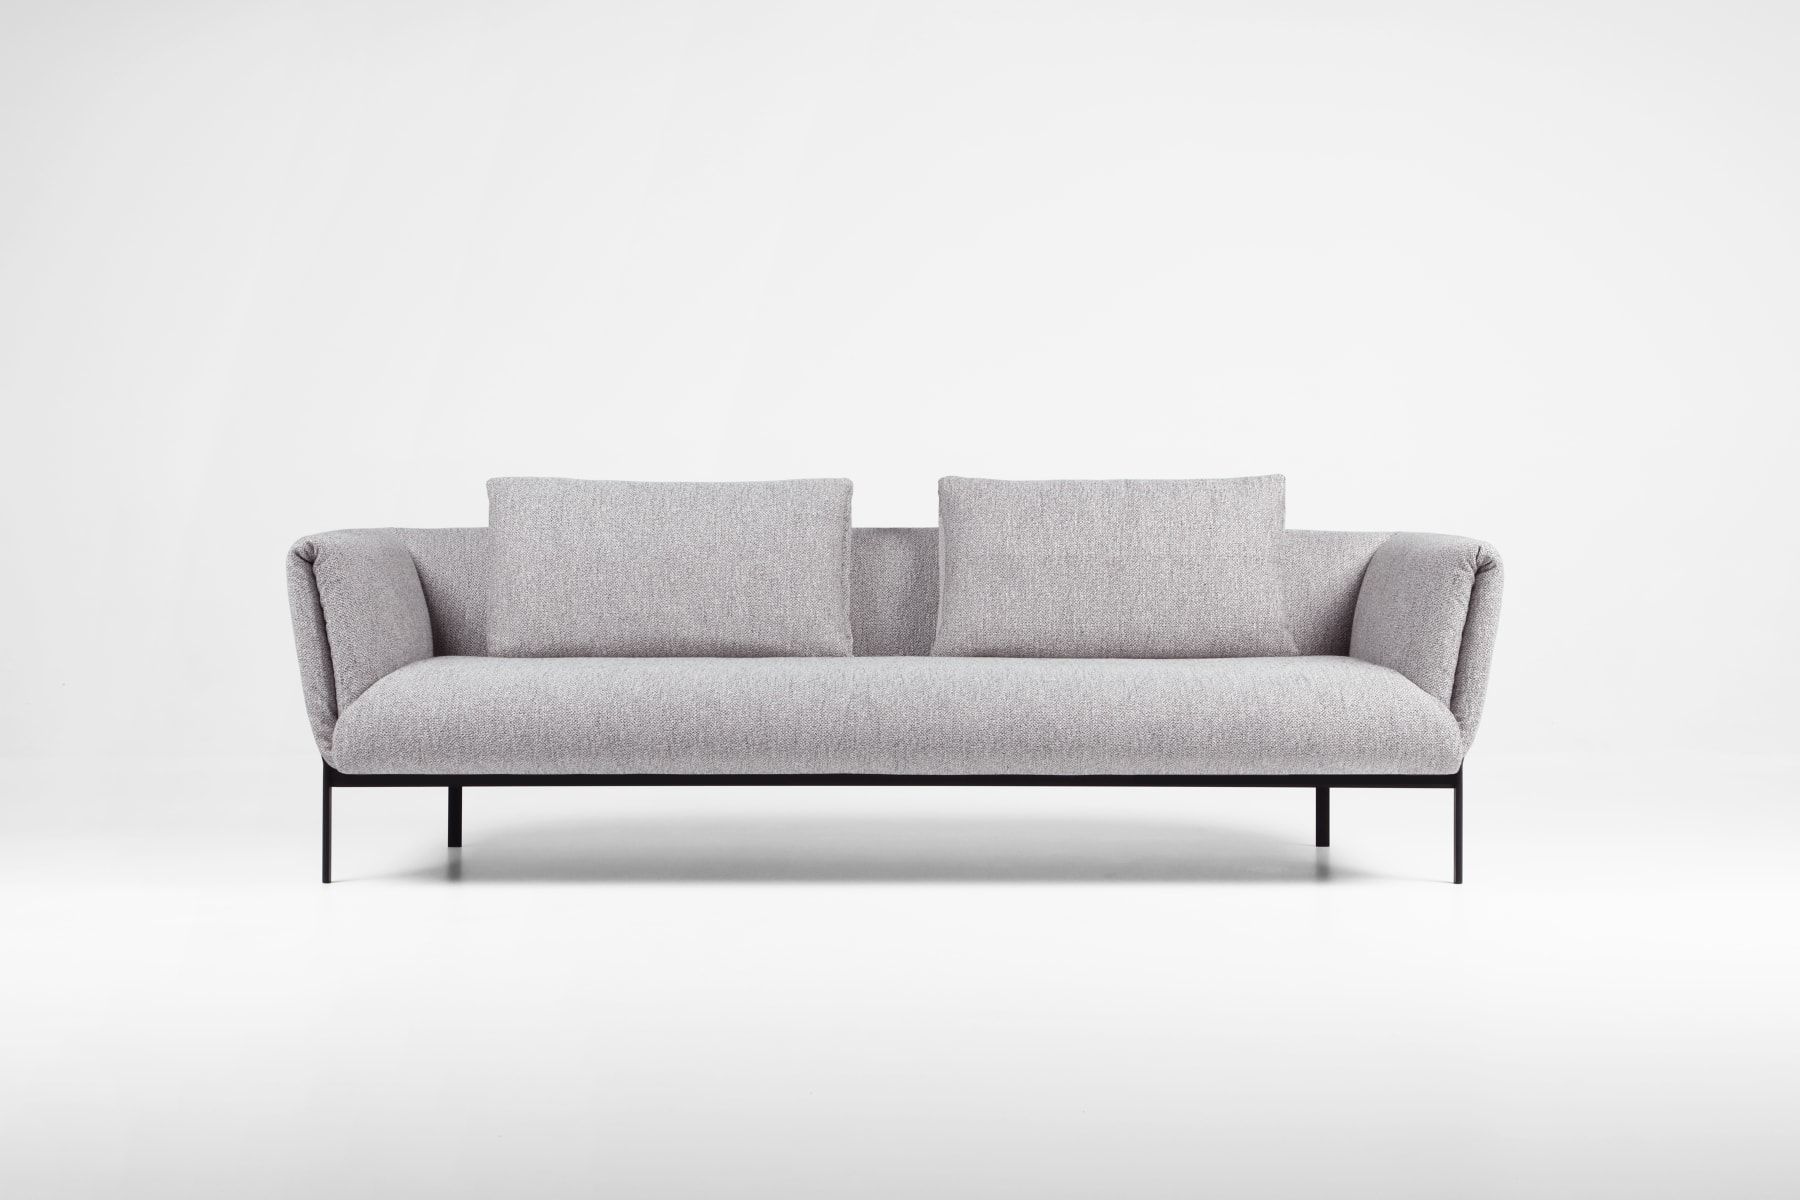 Prostoria Impression Sofa Sofa Furniture Comfortable Seating